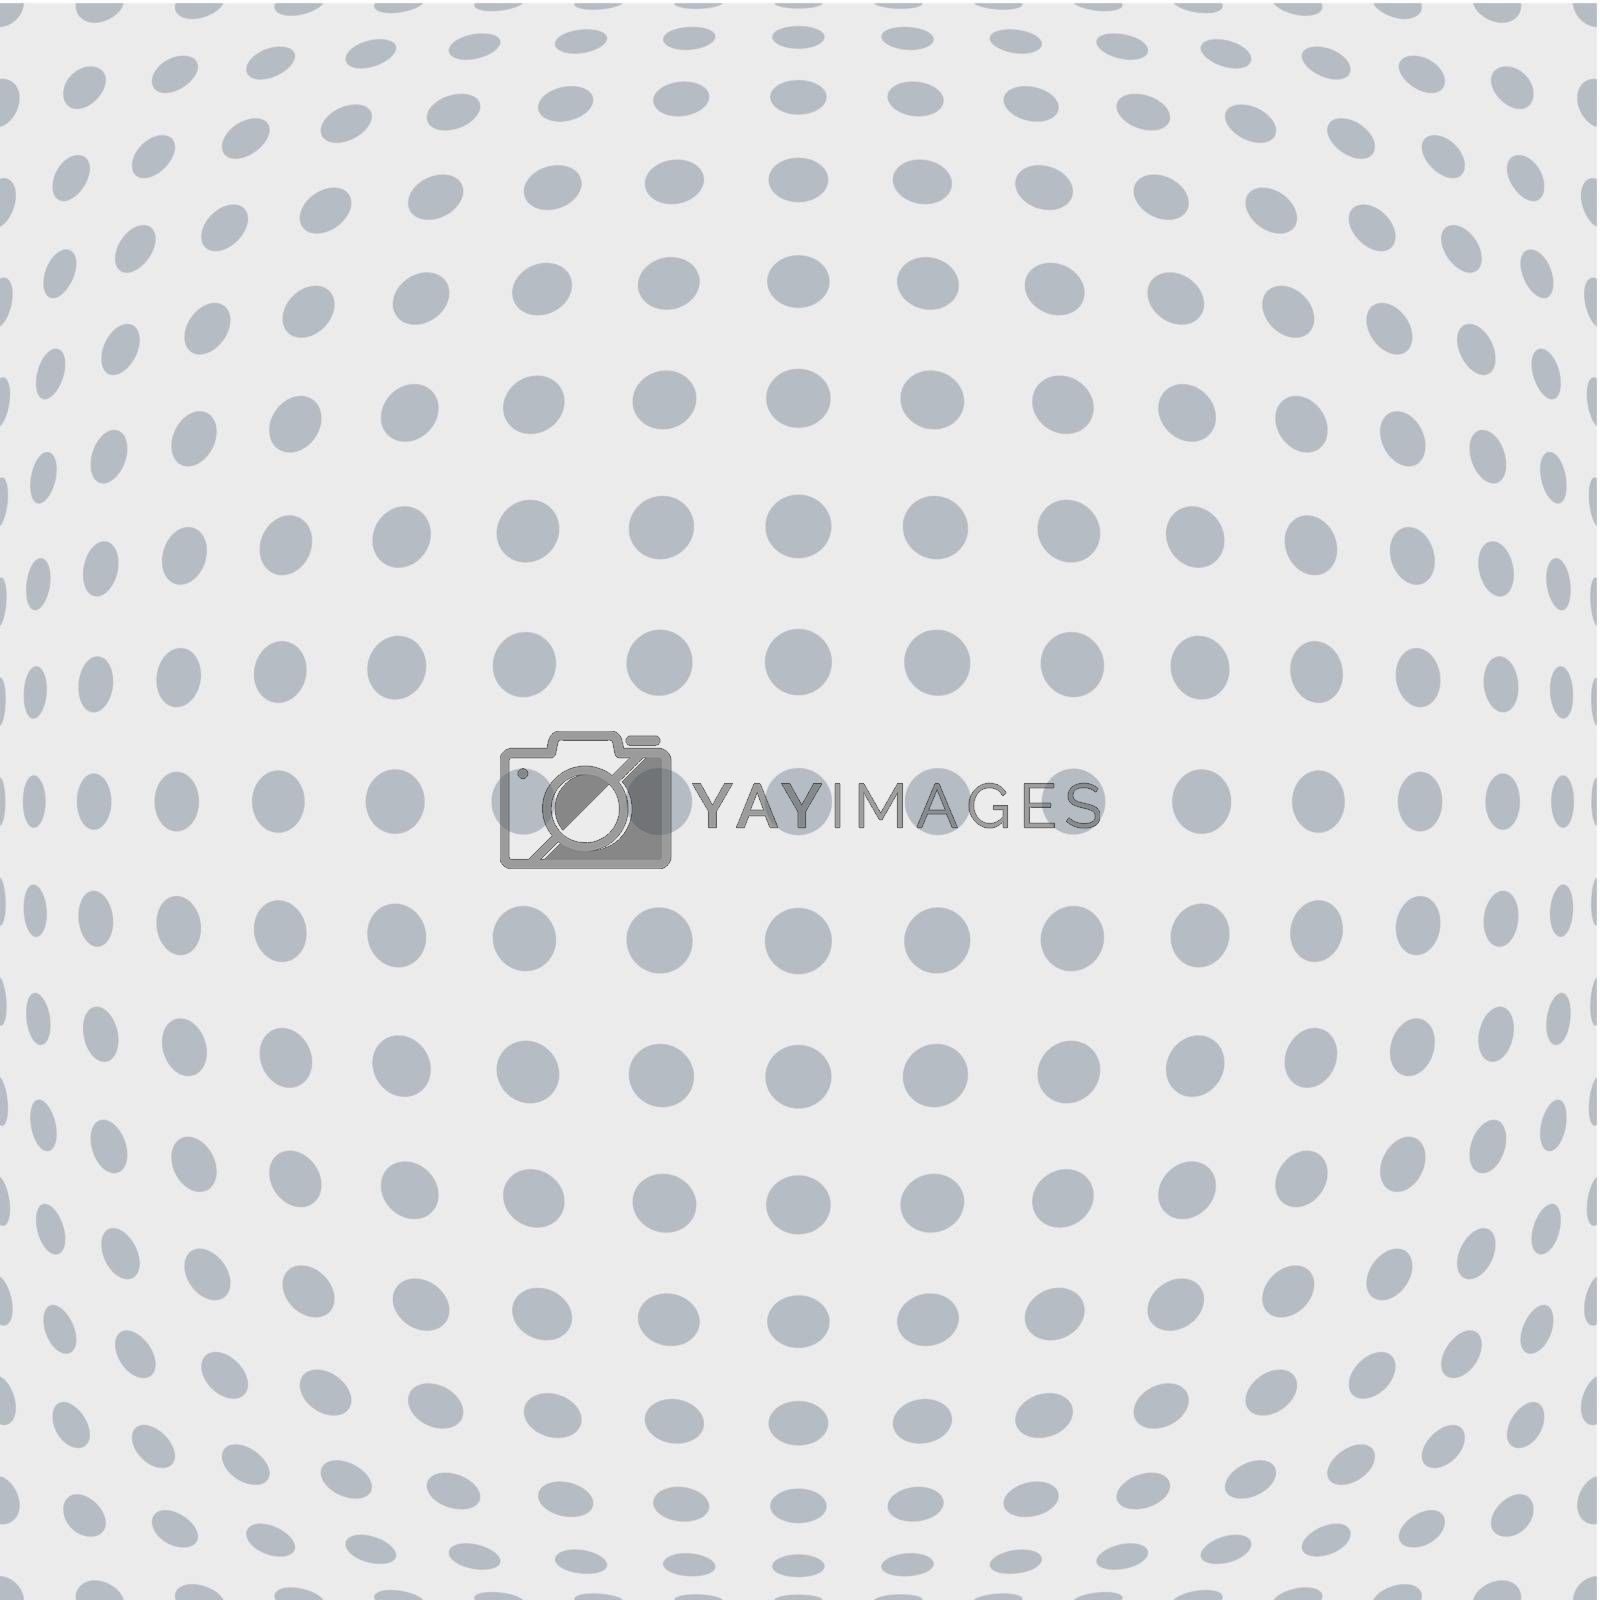 Royalty free image of Abstract perforated background by dvarg